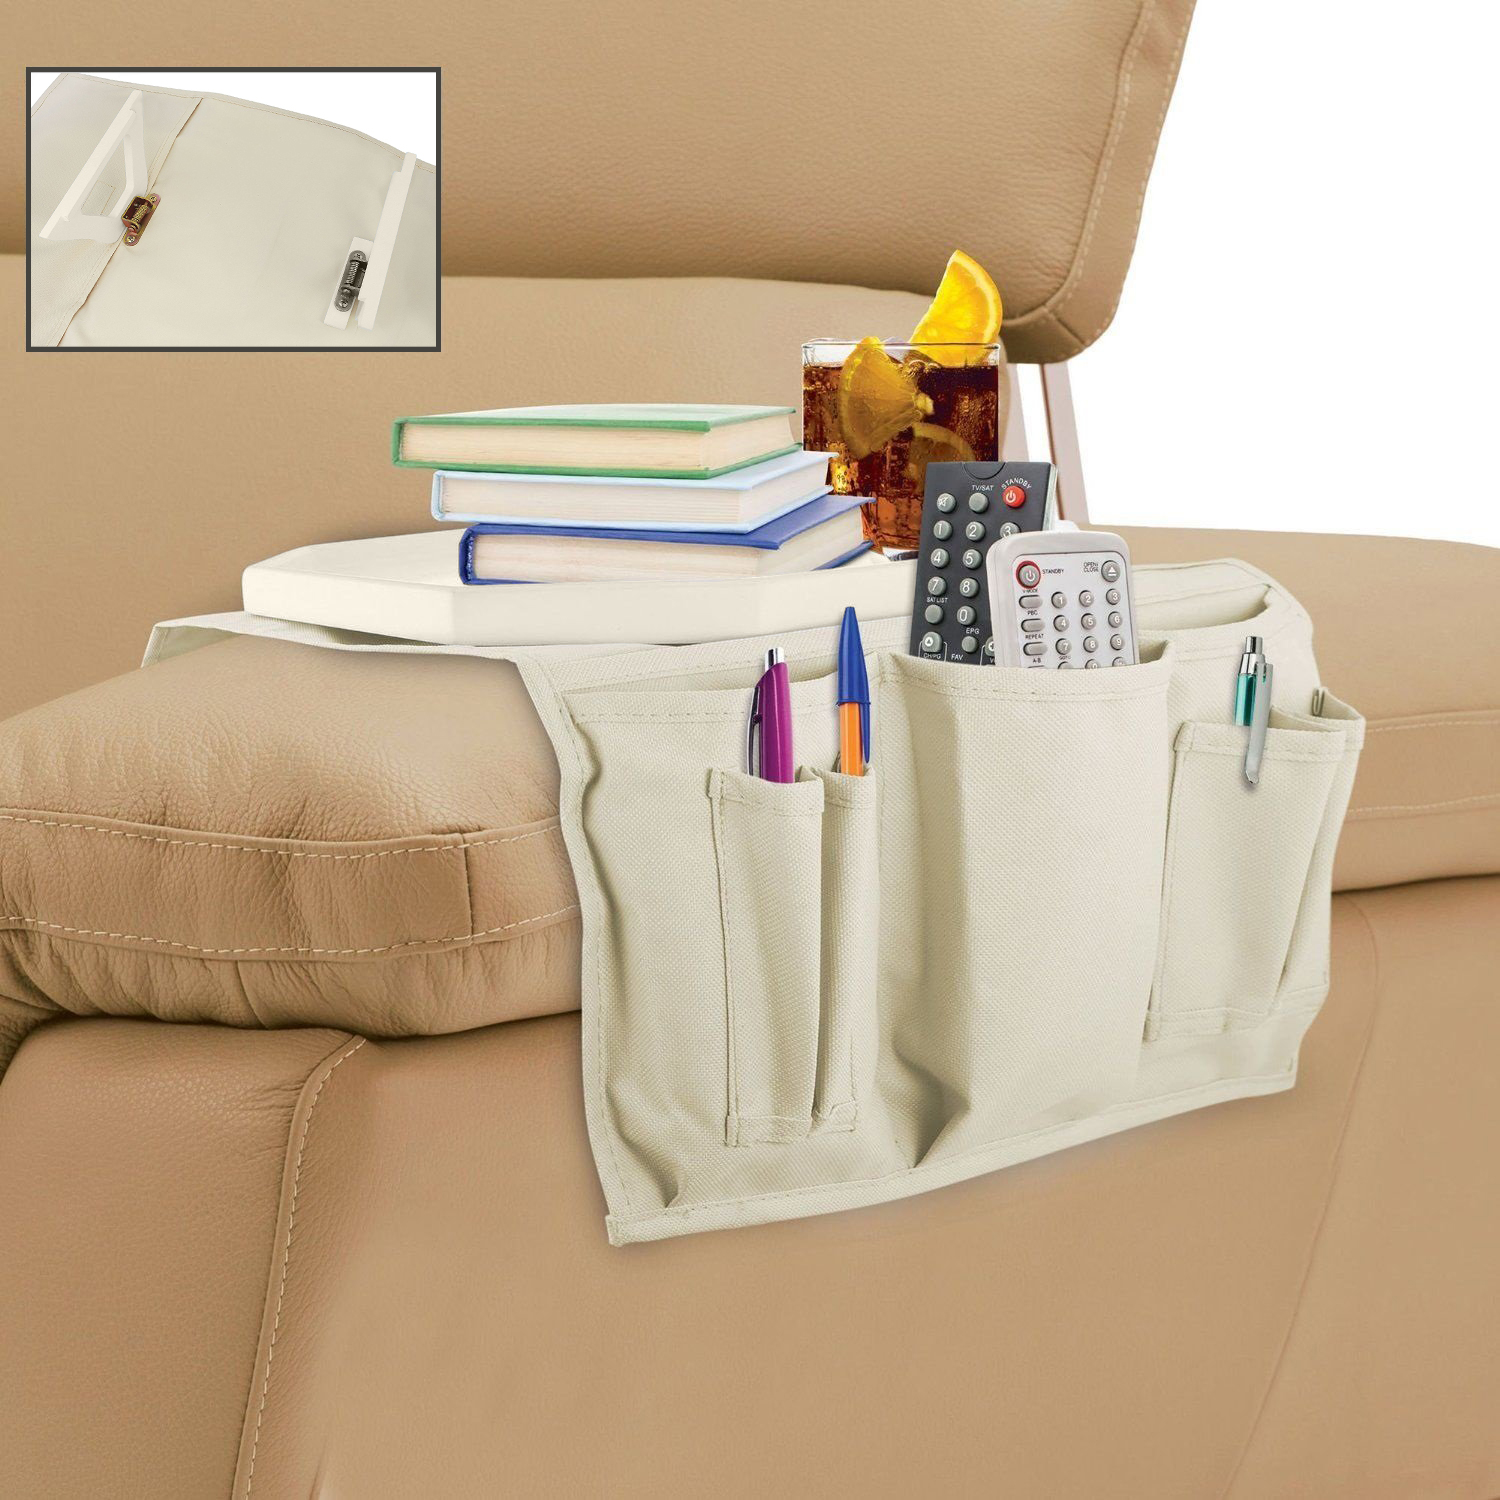 remote control holder for chair pattern hyperextension roman wooden clasp couch tray table and organizer kovot